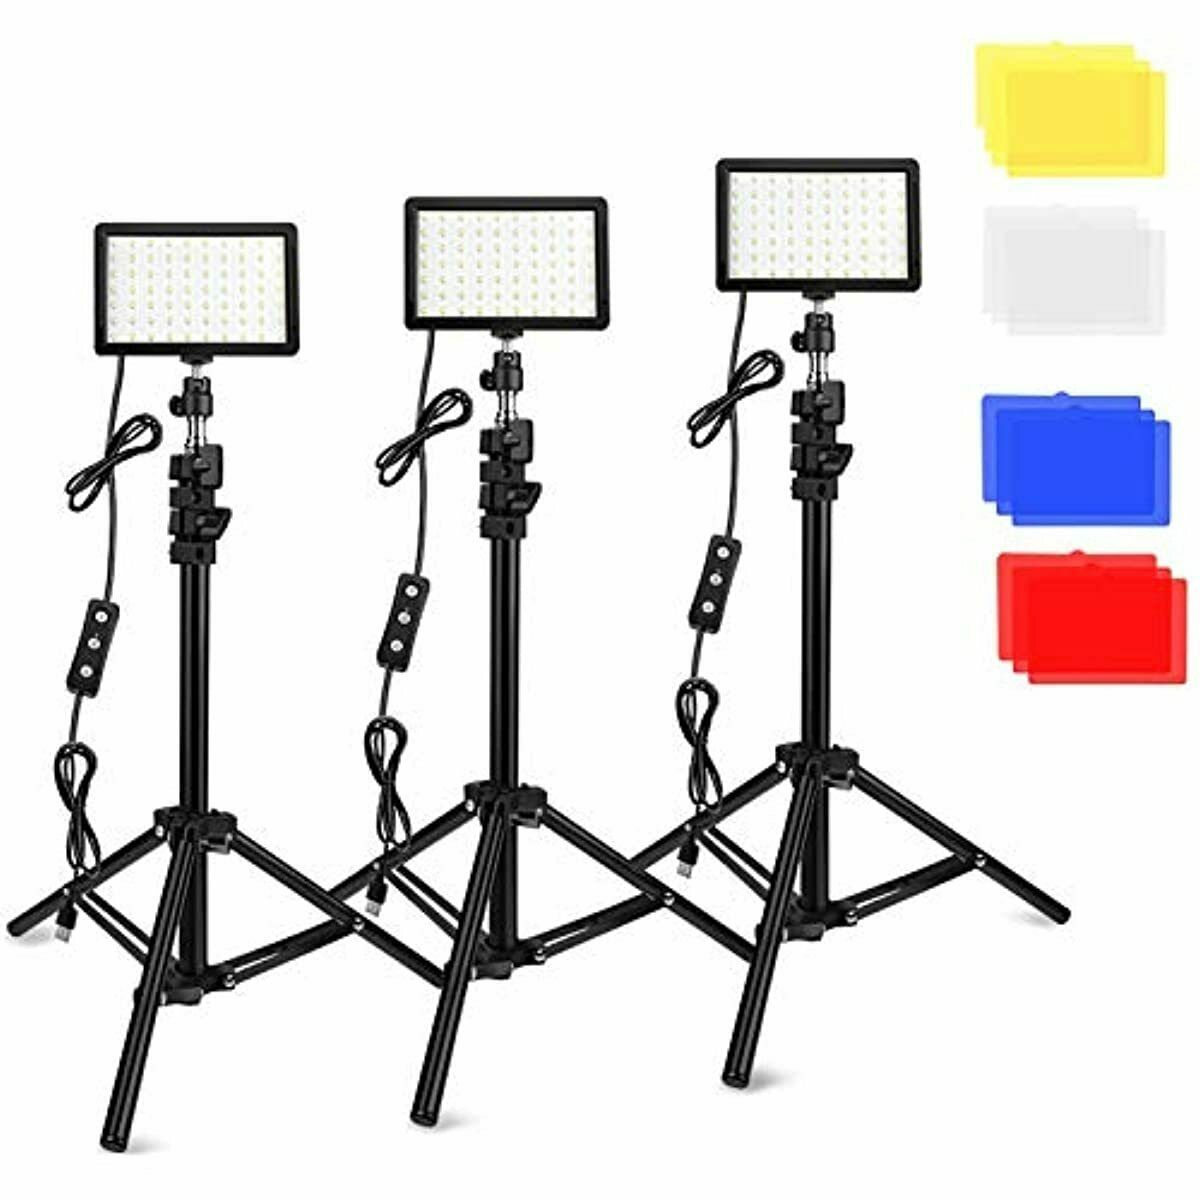 3 Packs 70 LED Video Light with Adjustable Tripod Stand/Color Filters, Obeamiu 5